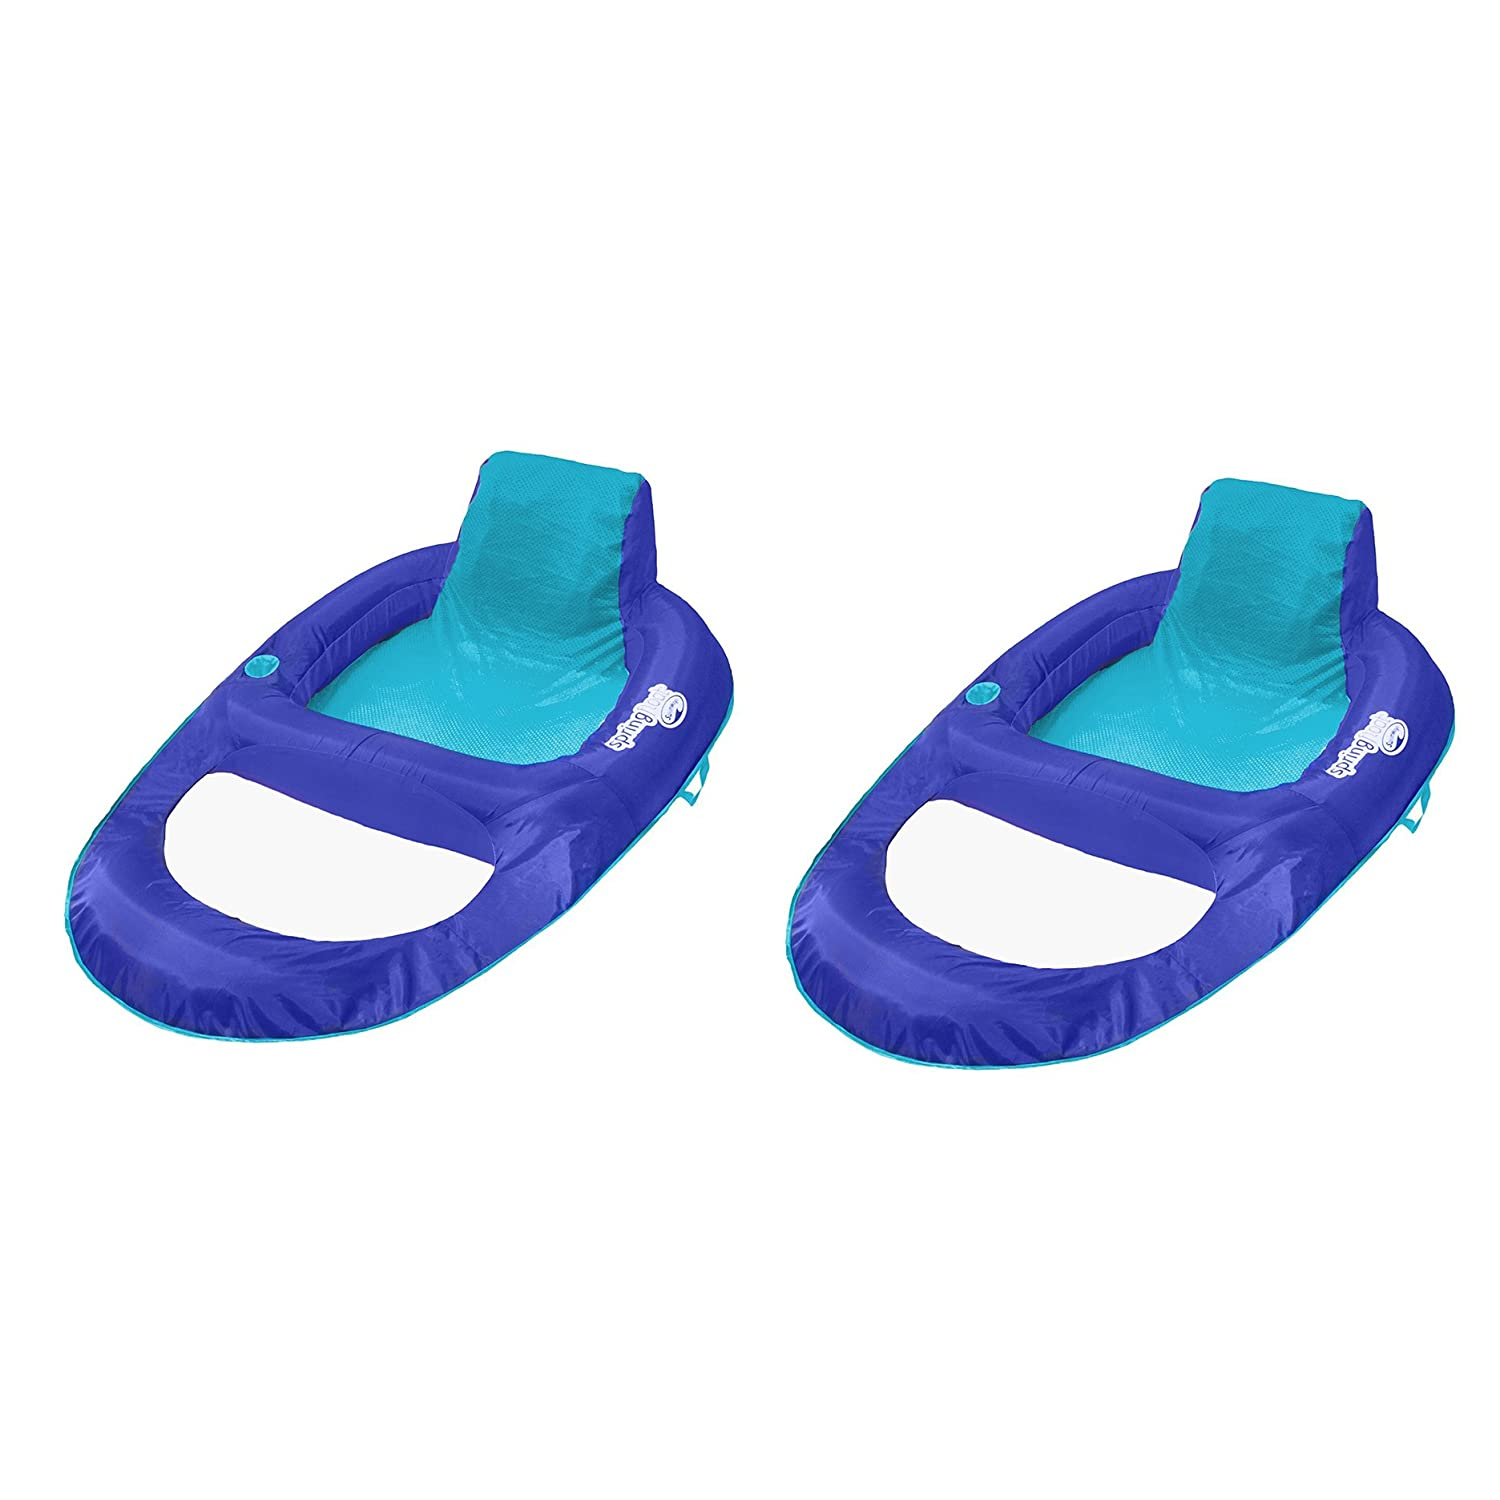 Amazon.com SwimWays Spring Float Recliner XL Floating Swimming Pool Lounge Chair (2 Pack) Toys u0026 Games  sc 1 st  Amazon.com & Amazon.com: SwimWays Spring Float Recliner XL Floating Swimming ... islam-shia.org